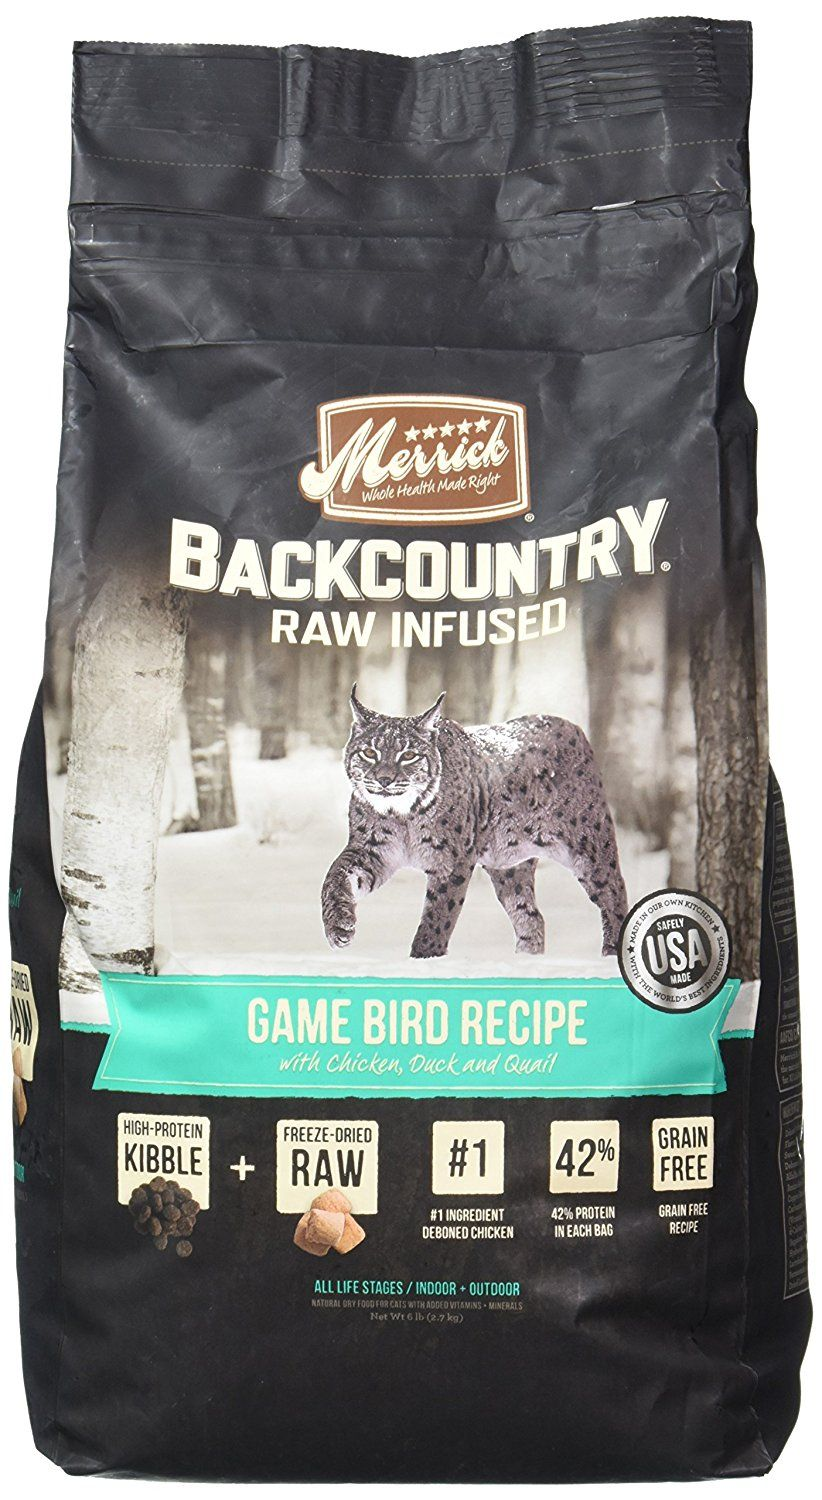 Merrick Backcountry Dry Cat Food Special Cat Product Just For You See It Now Cat Food Natural Cat Food Dry Cat Food Cat Food